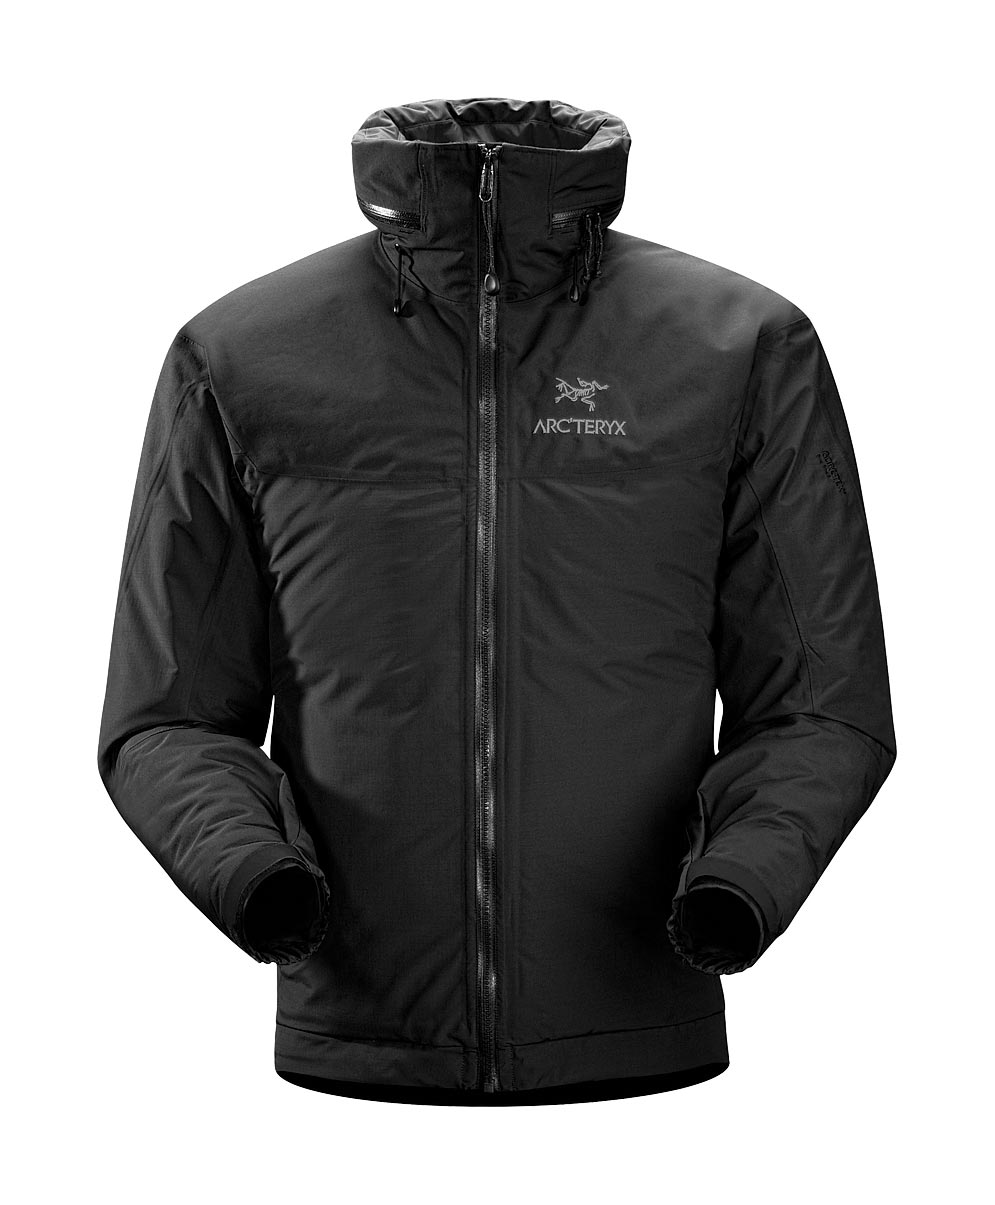 Arcteryx Black Fission AR Jacket